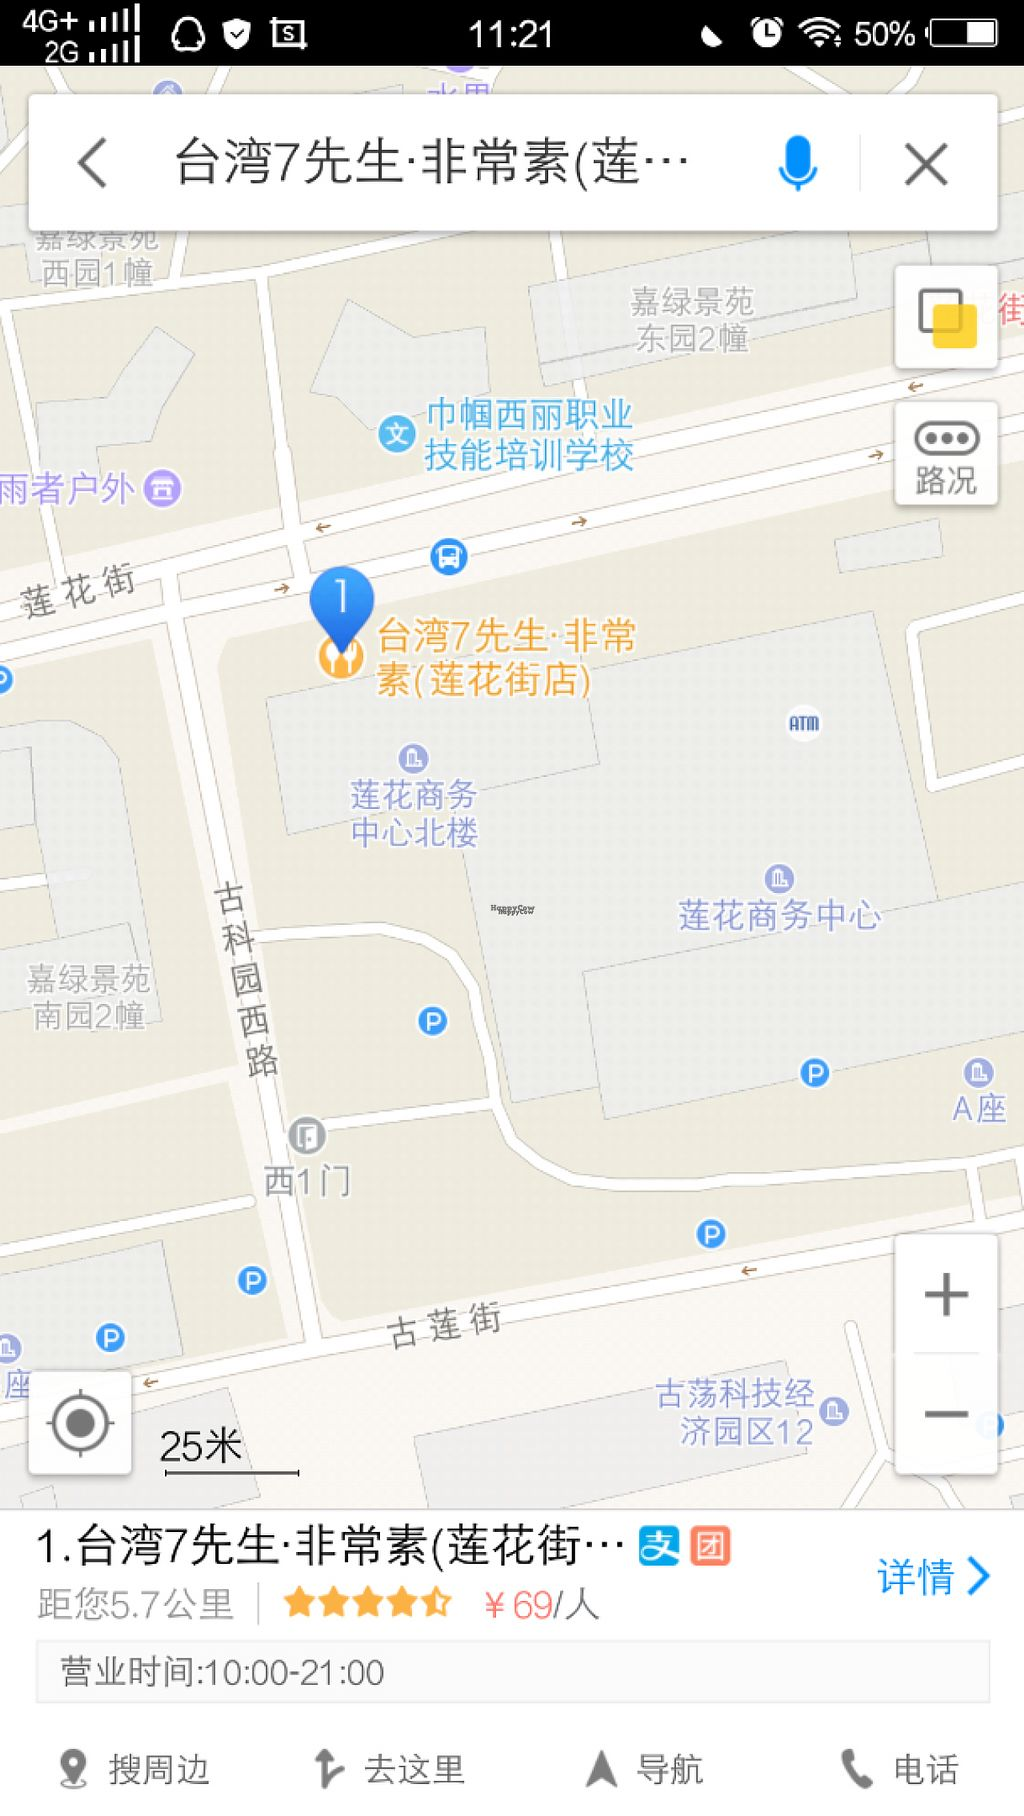 """Photo of Super Vegan - LianHua Commercial Center  by <a href=""""/members/profile/CHIHHSINWANG"""">CHIHHSINWANG</a> <br/>Fixed location on the map <br/> November 5, 2016  - <a href='/contact/abuse/image/79735/186628'>Report</a>"""